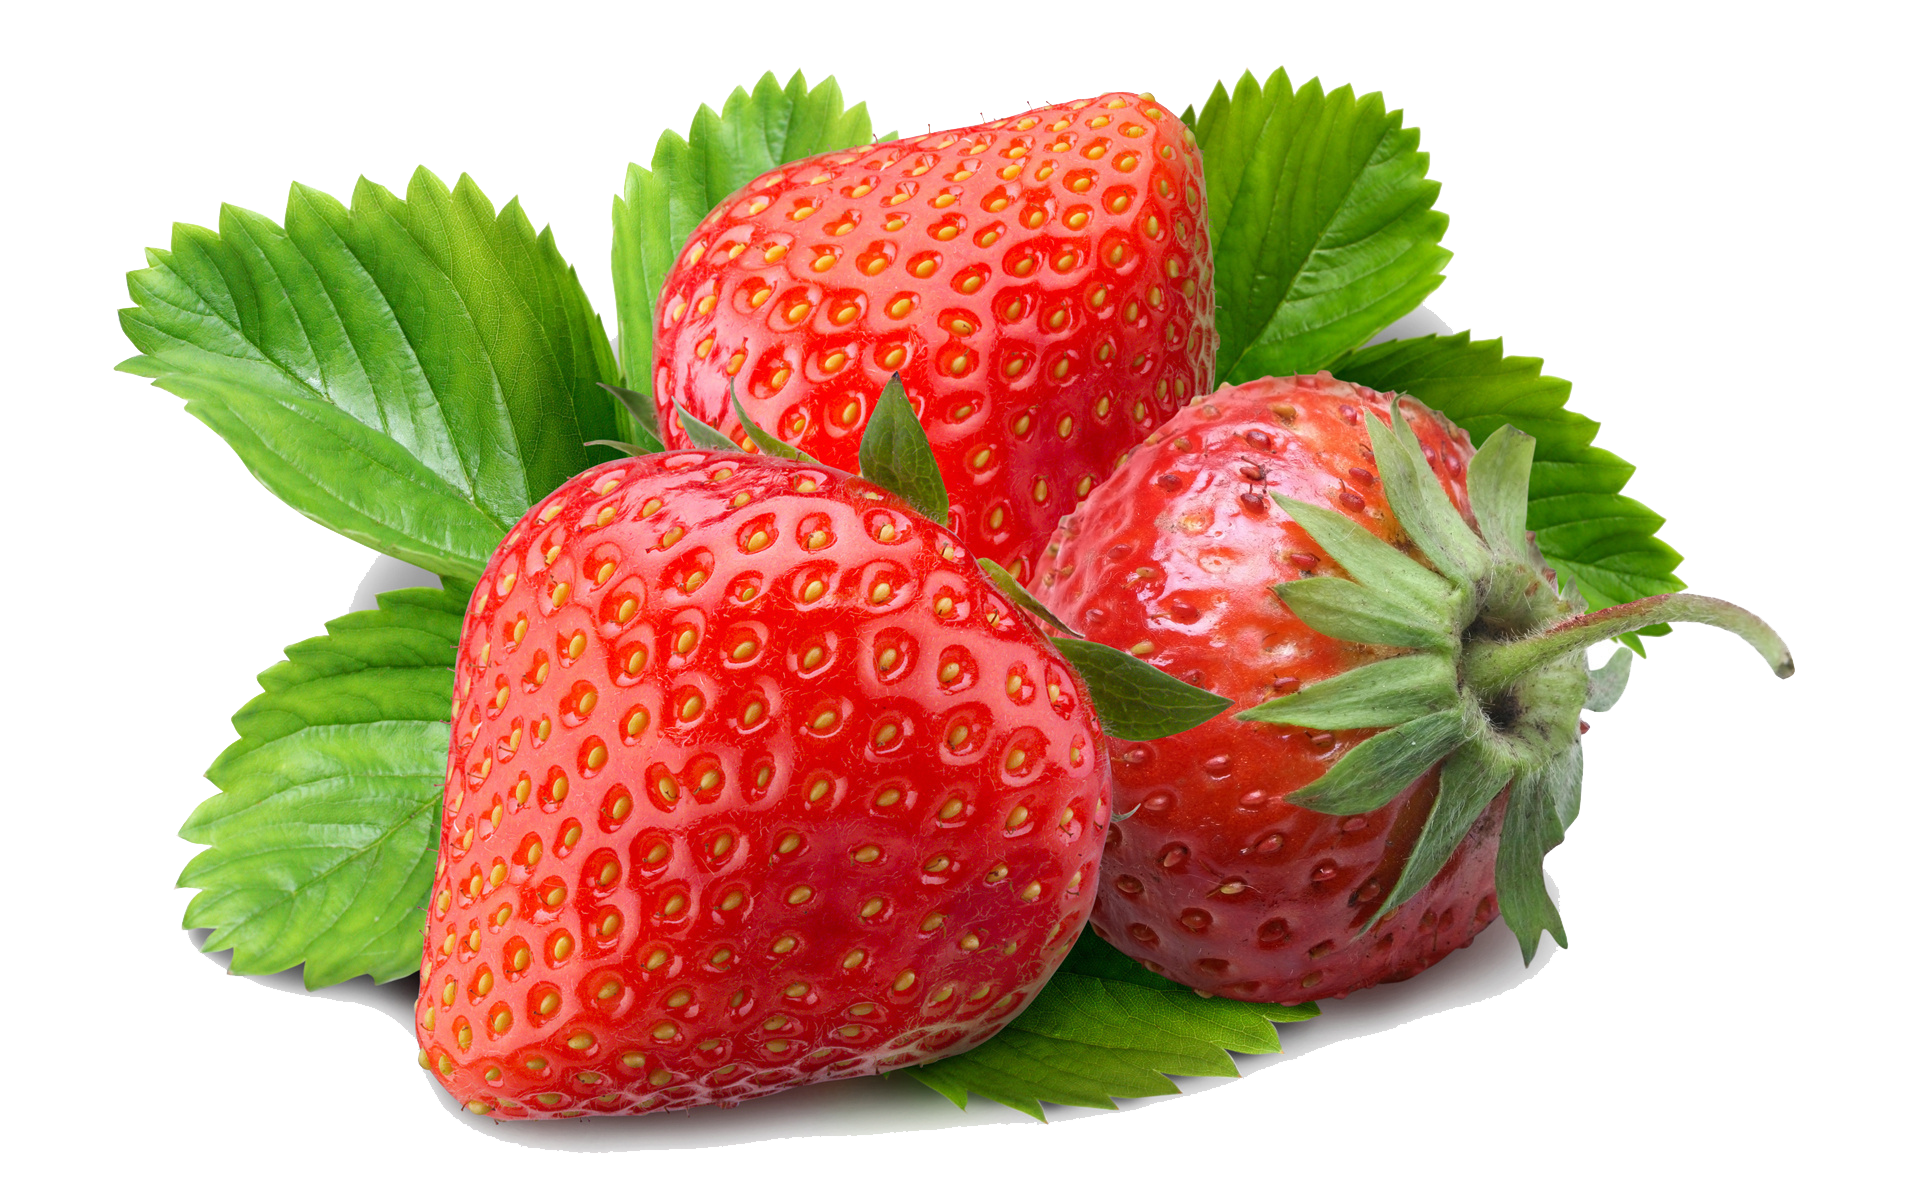 Strawberries png. Strawberry transparent images all